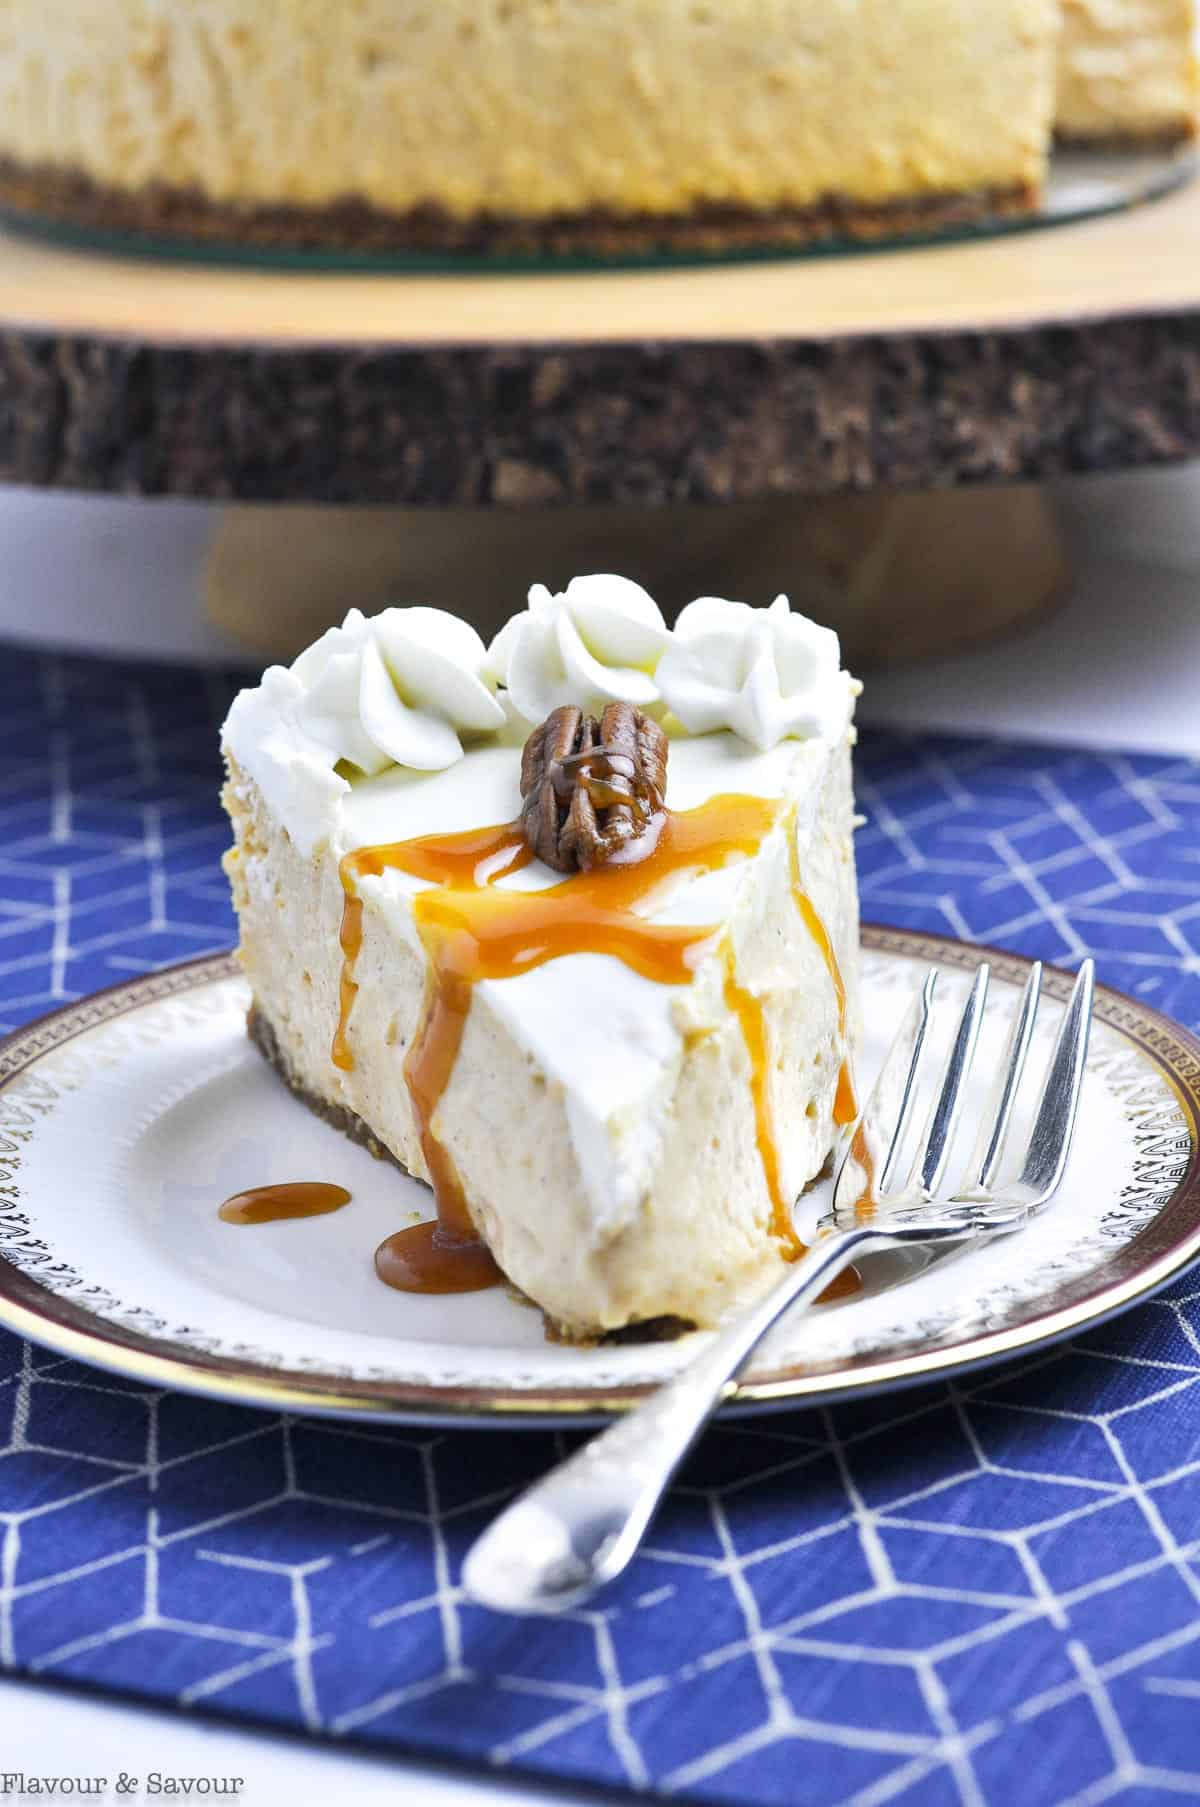 a slice of pumpkin cheesecake garnished with whipped cream and caramel sauce